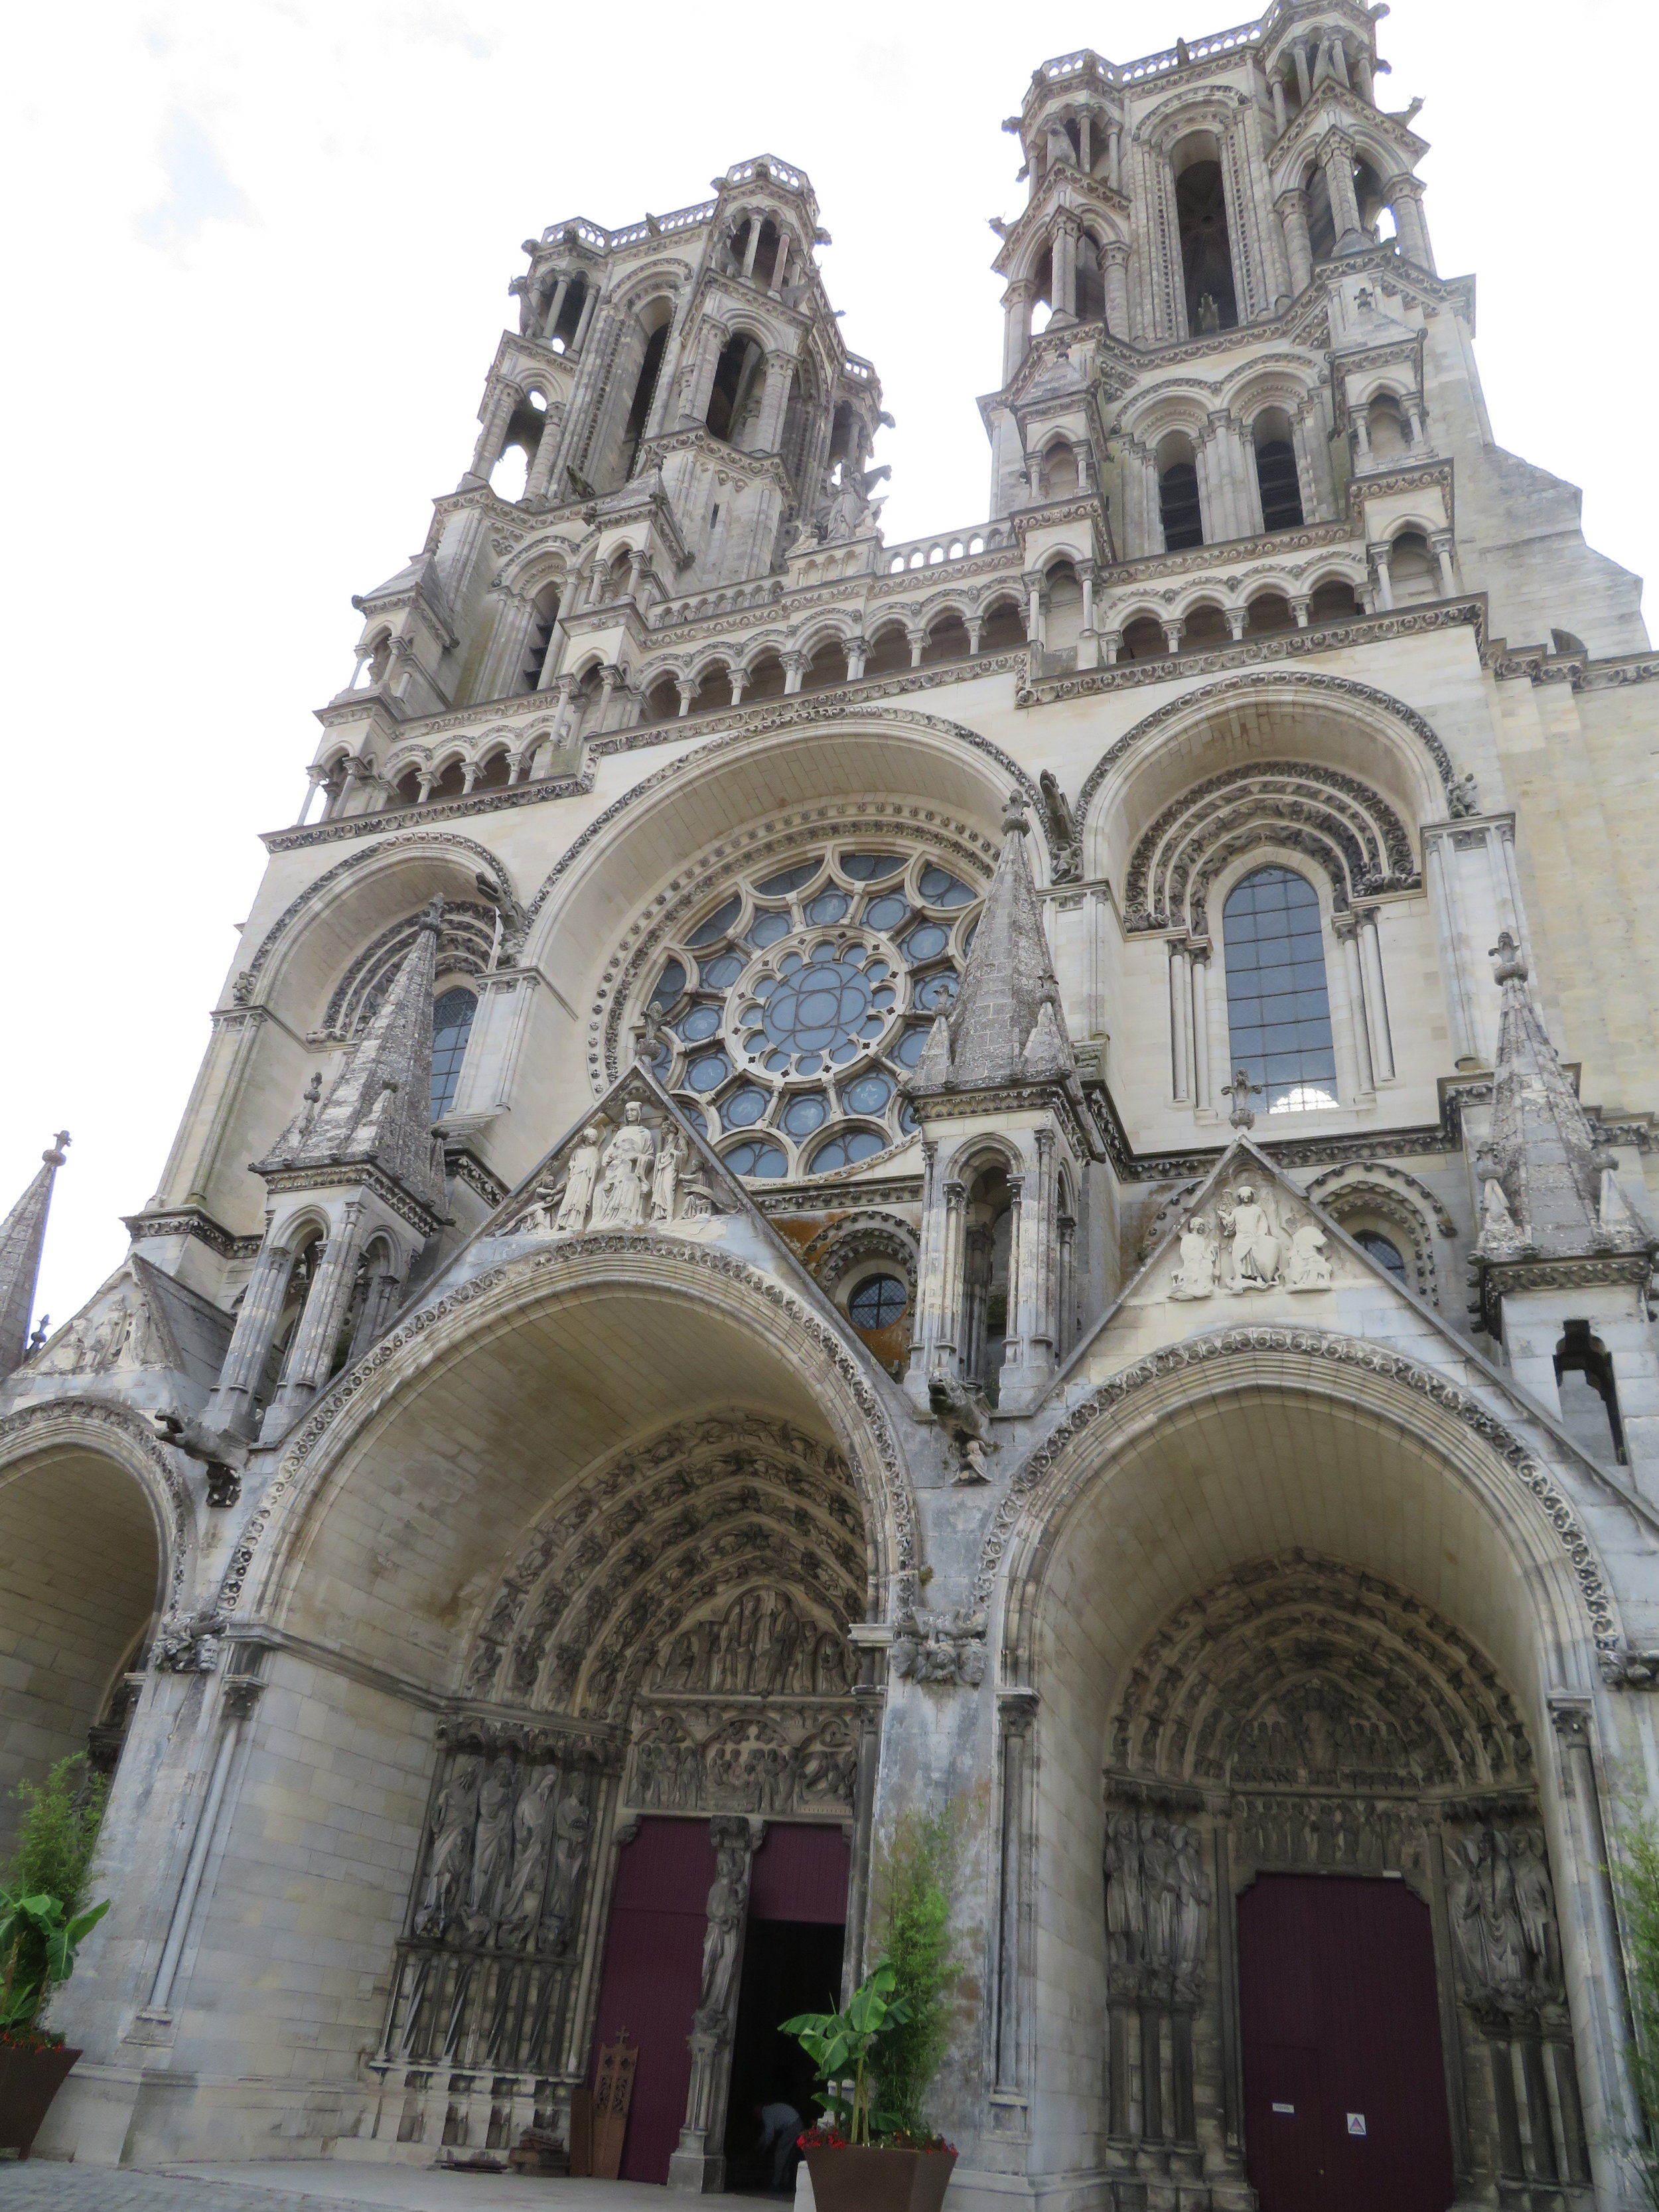 Laon's Notre-Dame Cathedral